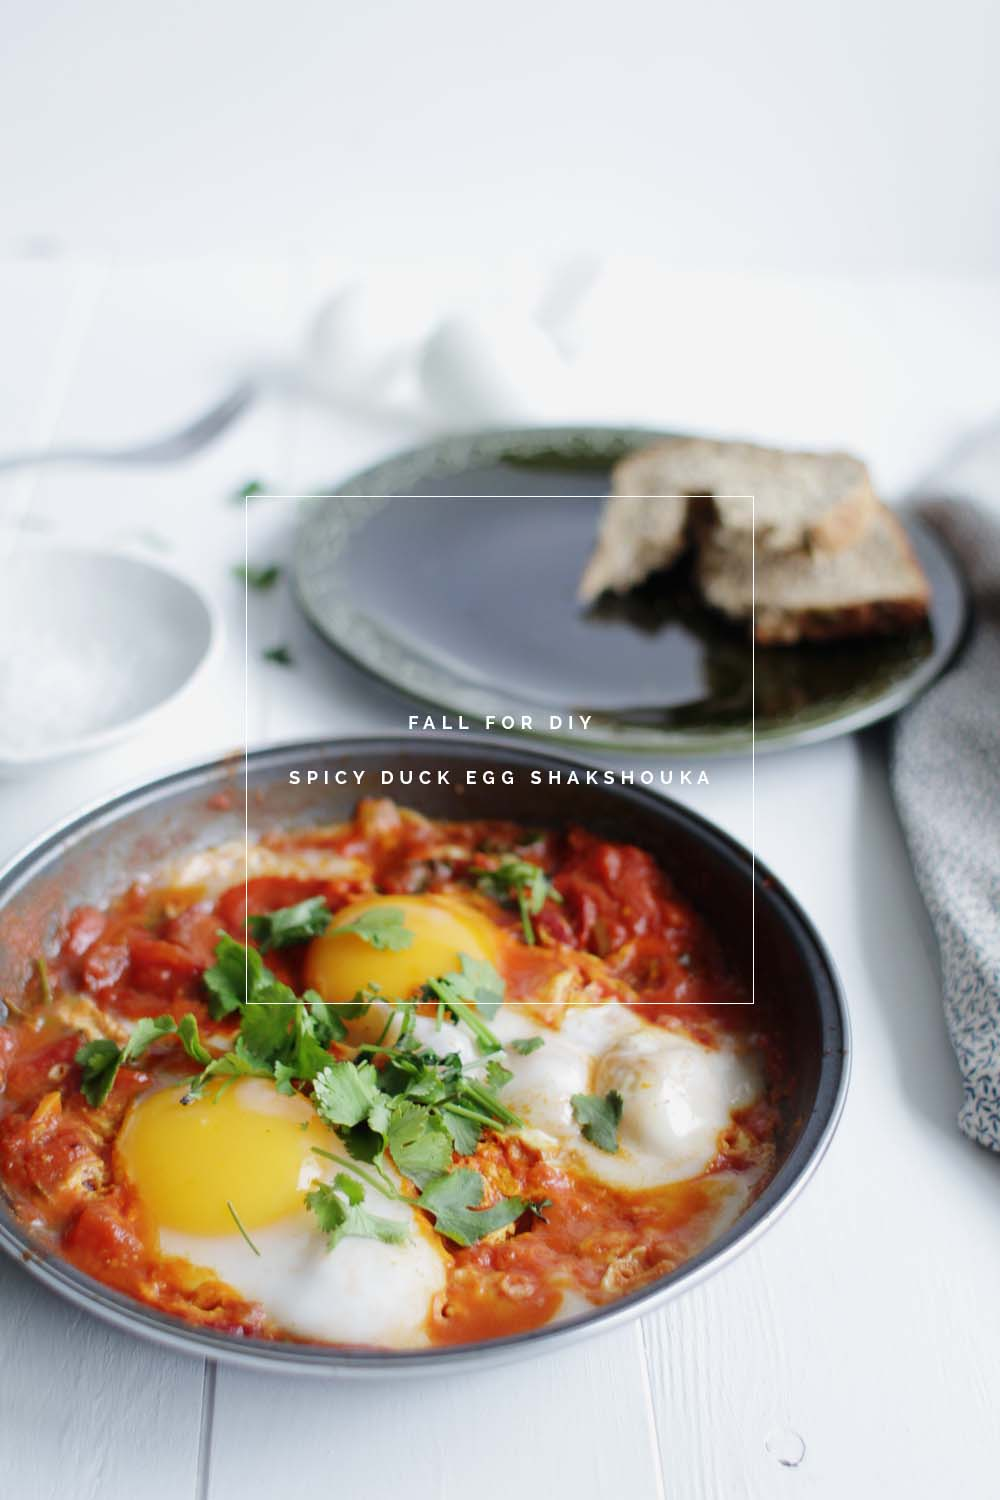 Fall For DIY | Spicy Duck Egg Shakshouka recipe